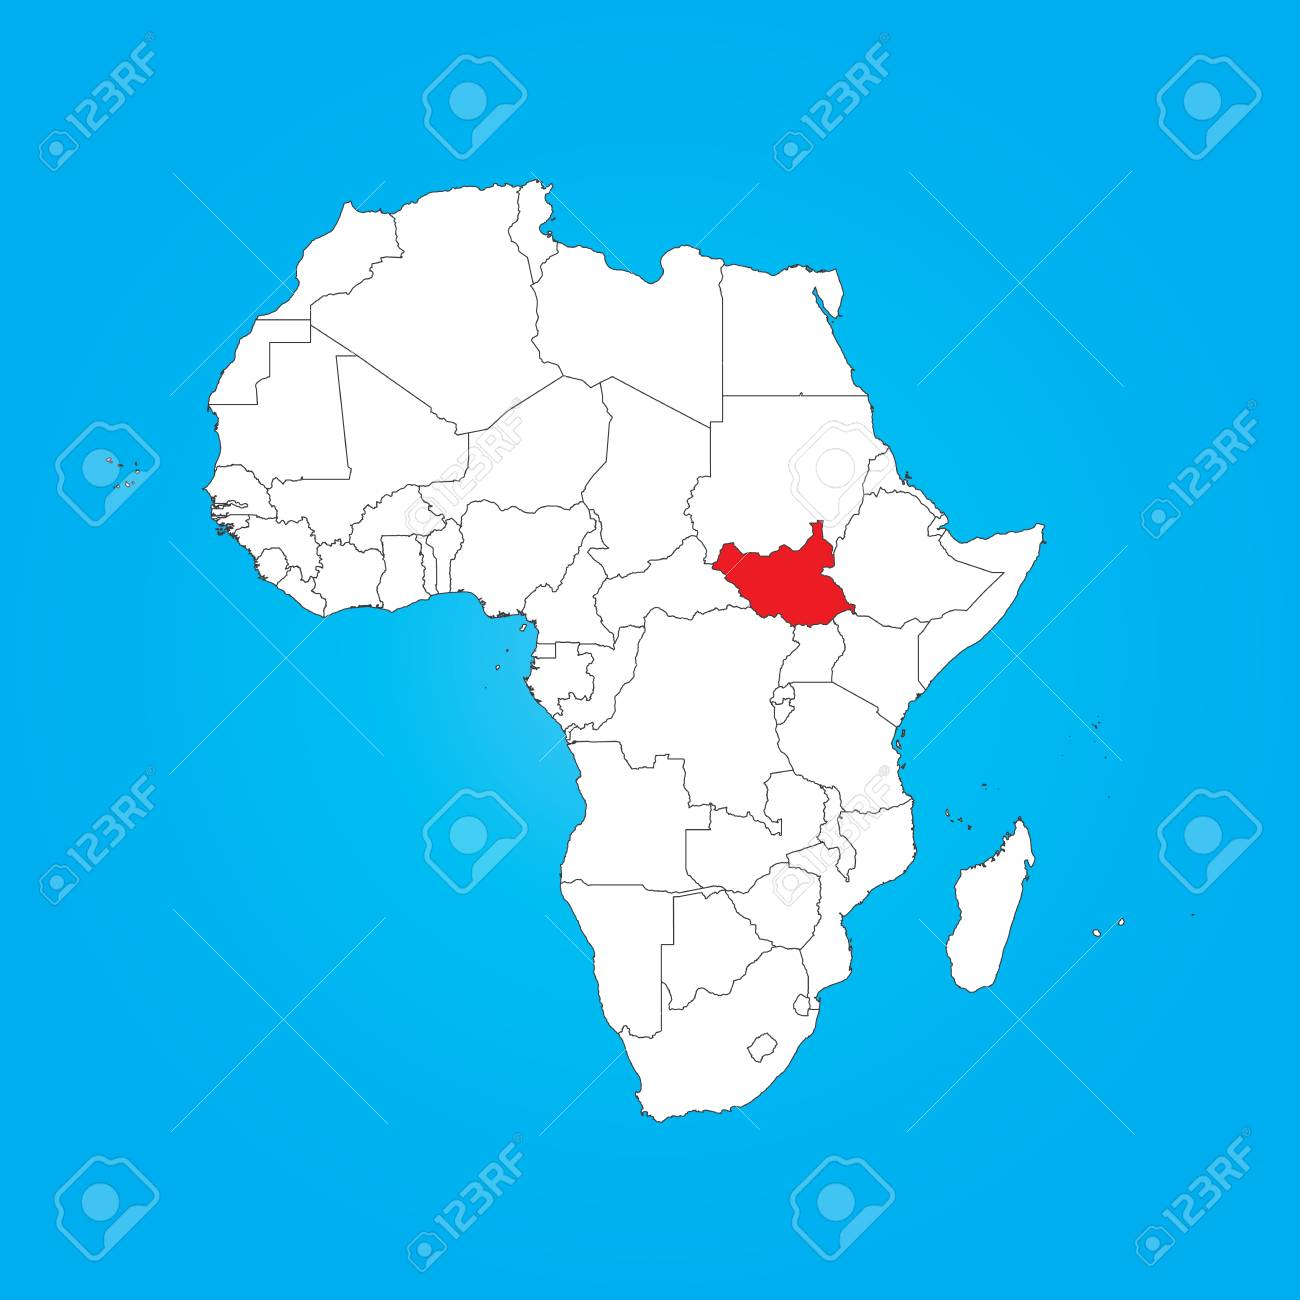 Africa Map With South Sudan.A Map Of Africa With A Selected Country Of South Sudan